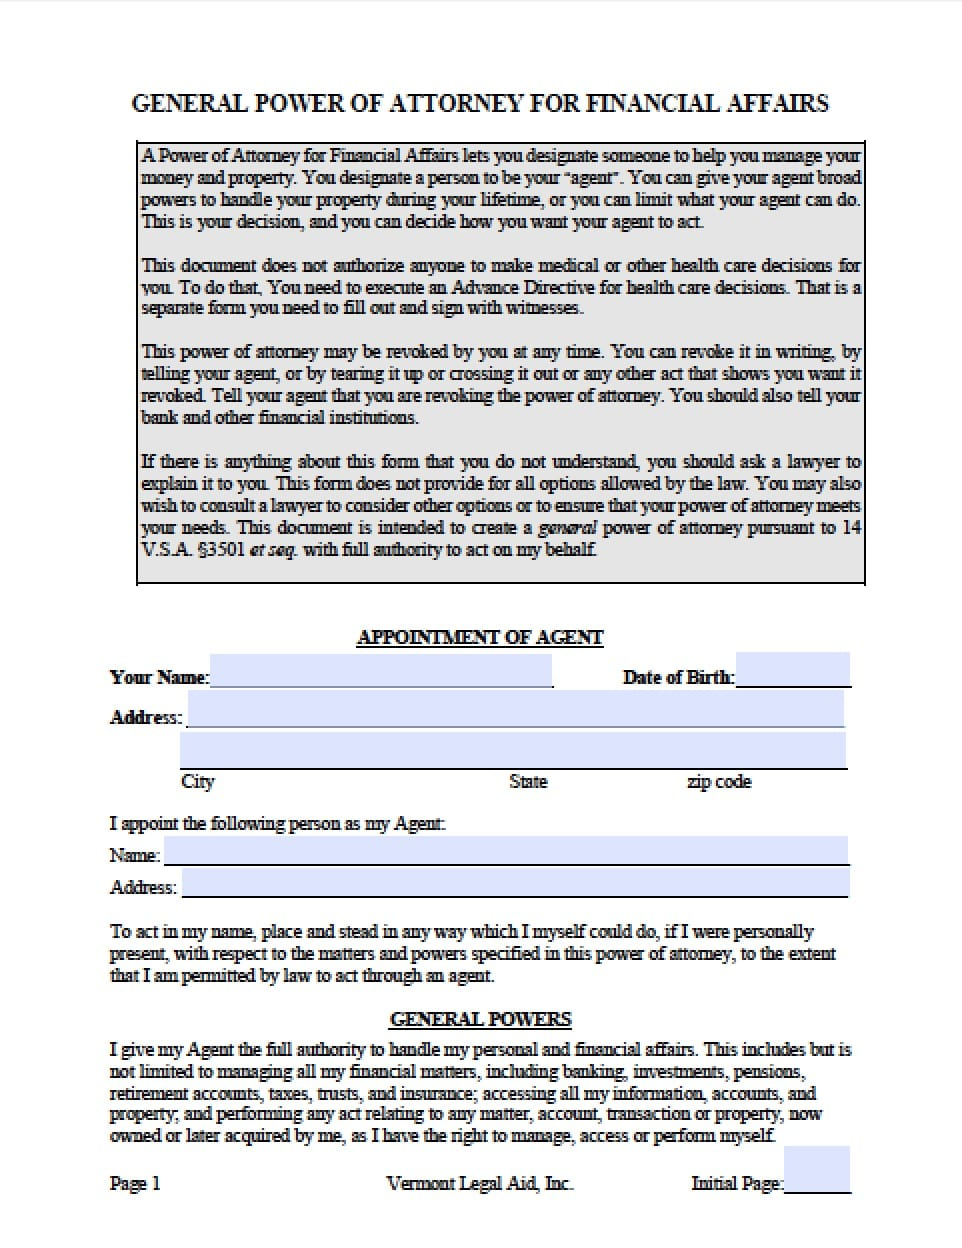 power of attorney form vt  Vermont Durable Financial Power of Attorney Form - Power of ...